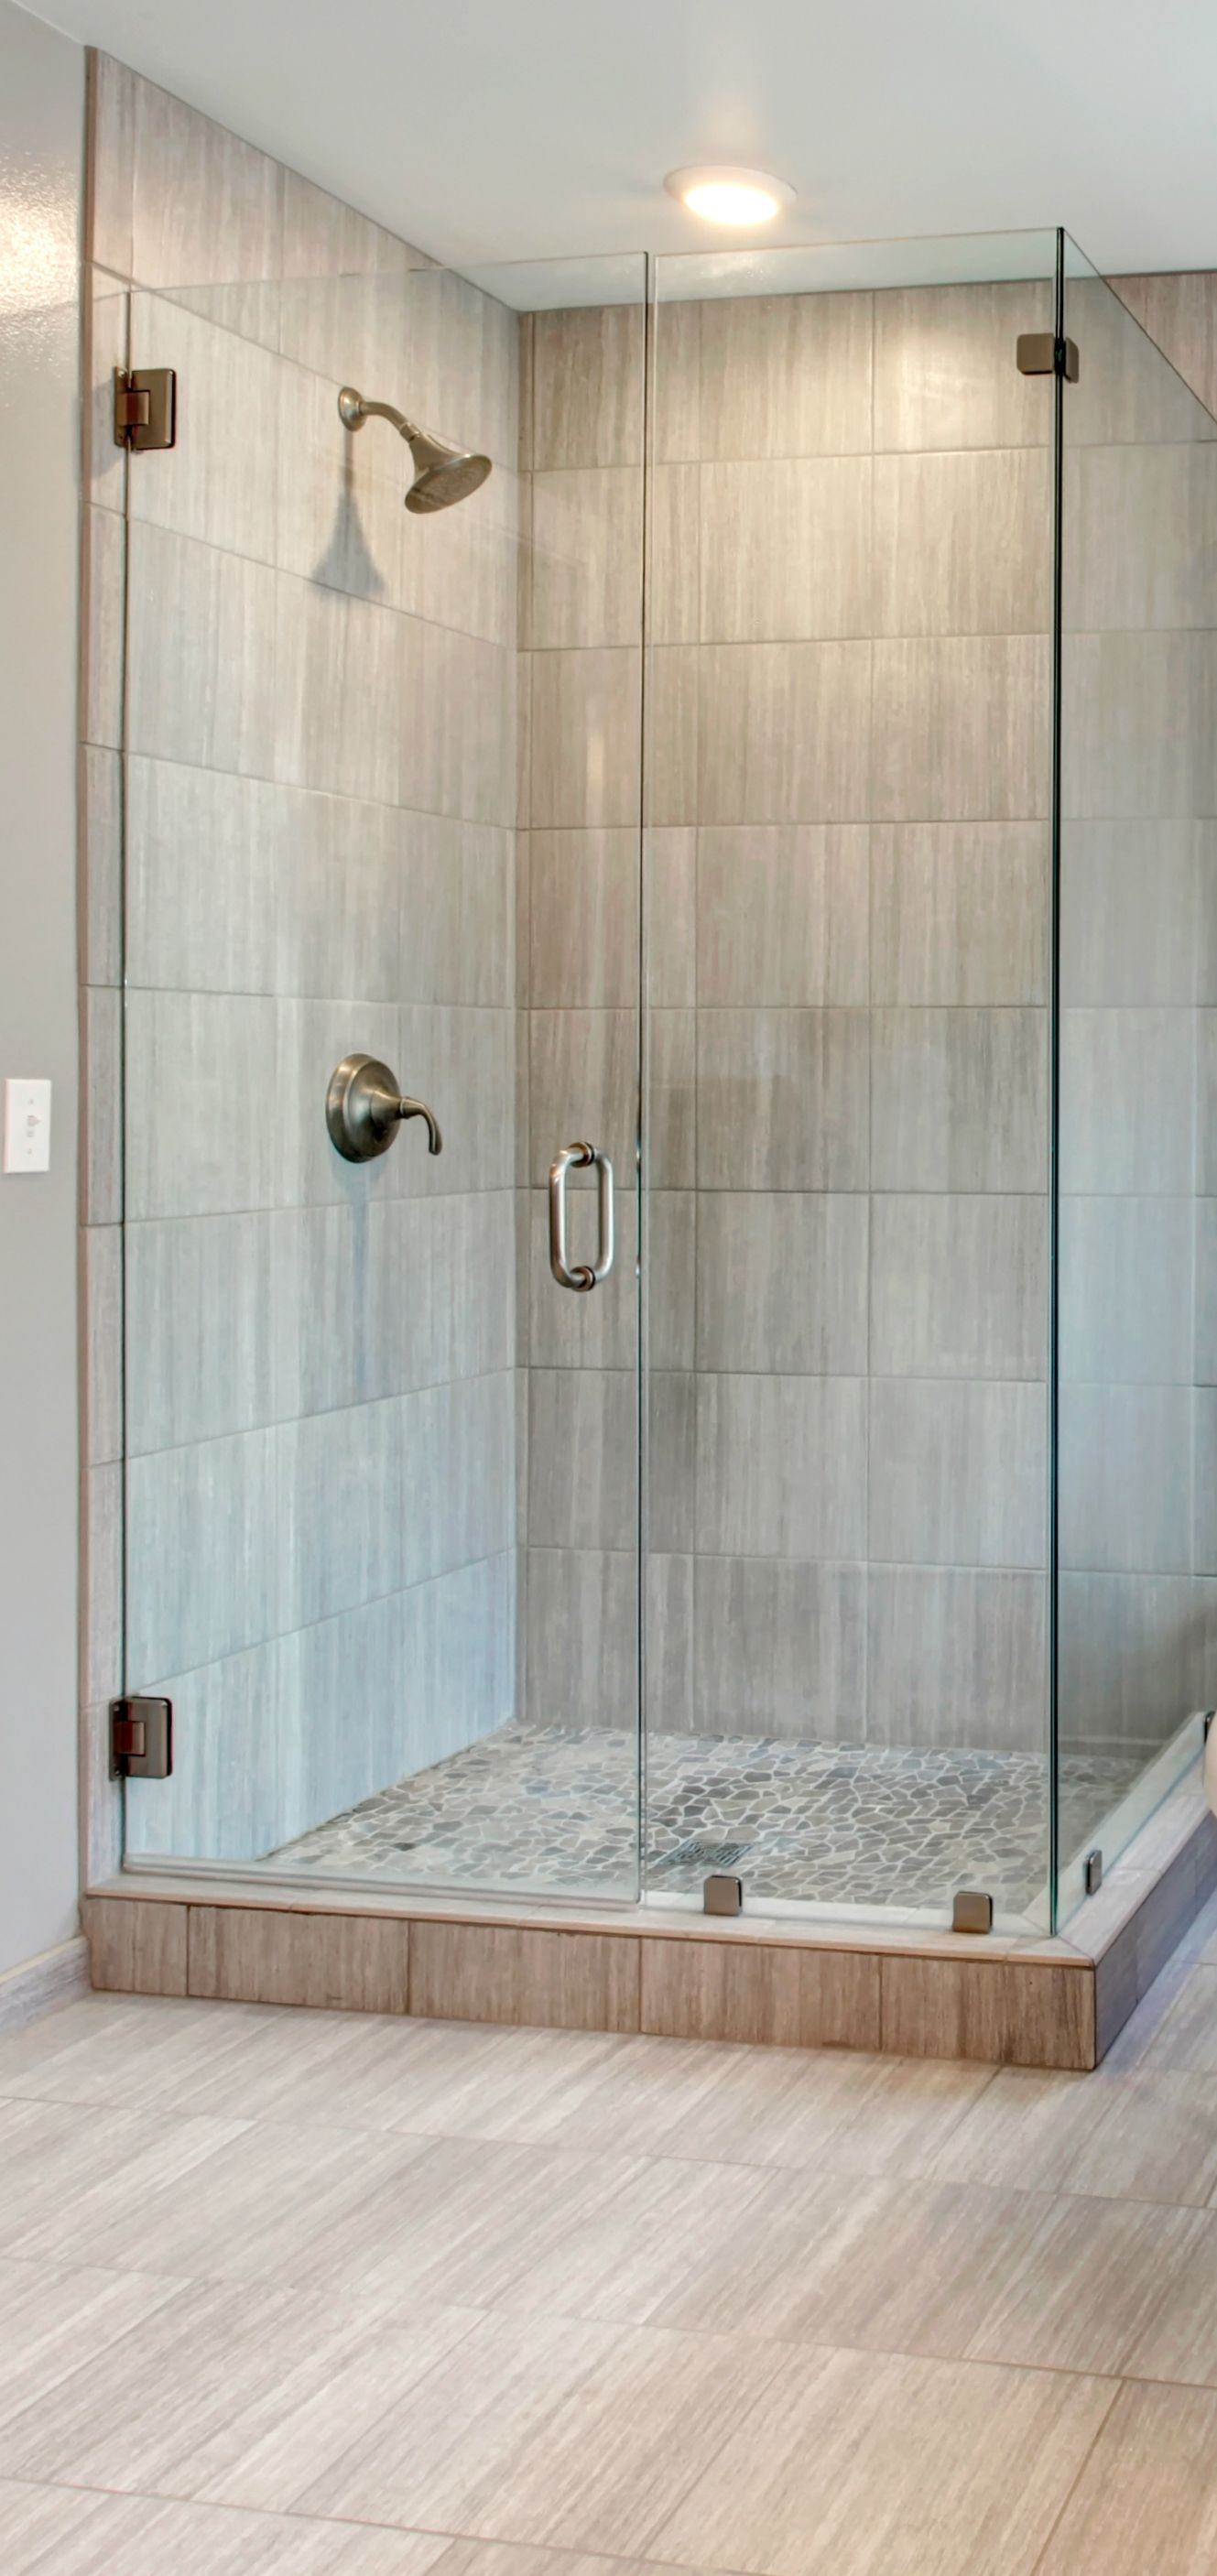 showers corner walk in shower ideas for simple small bathroom with natural stone shower pans decor - Walk In Shower Design Ideas